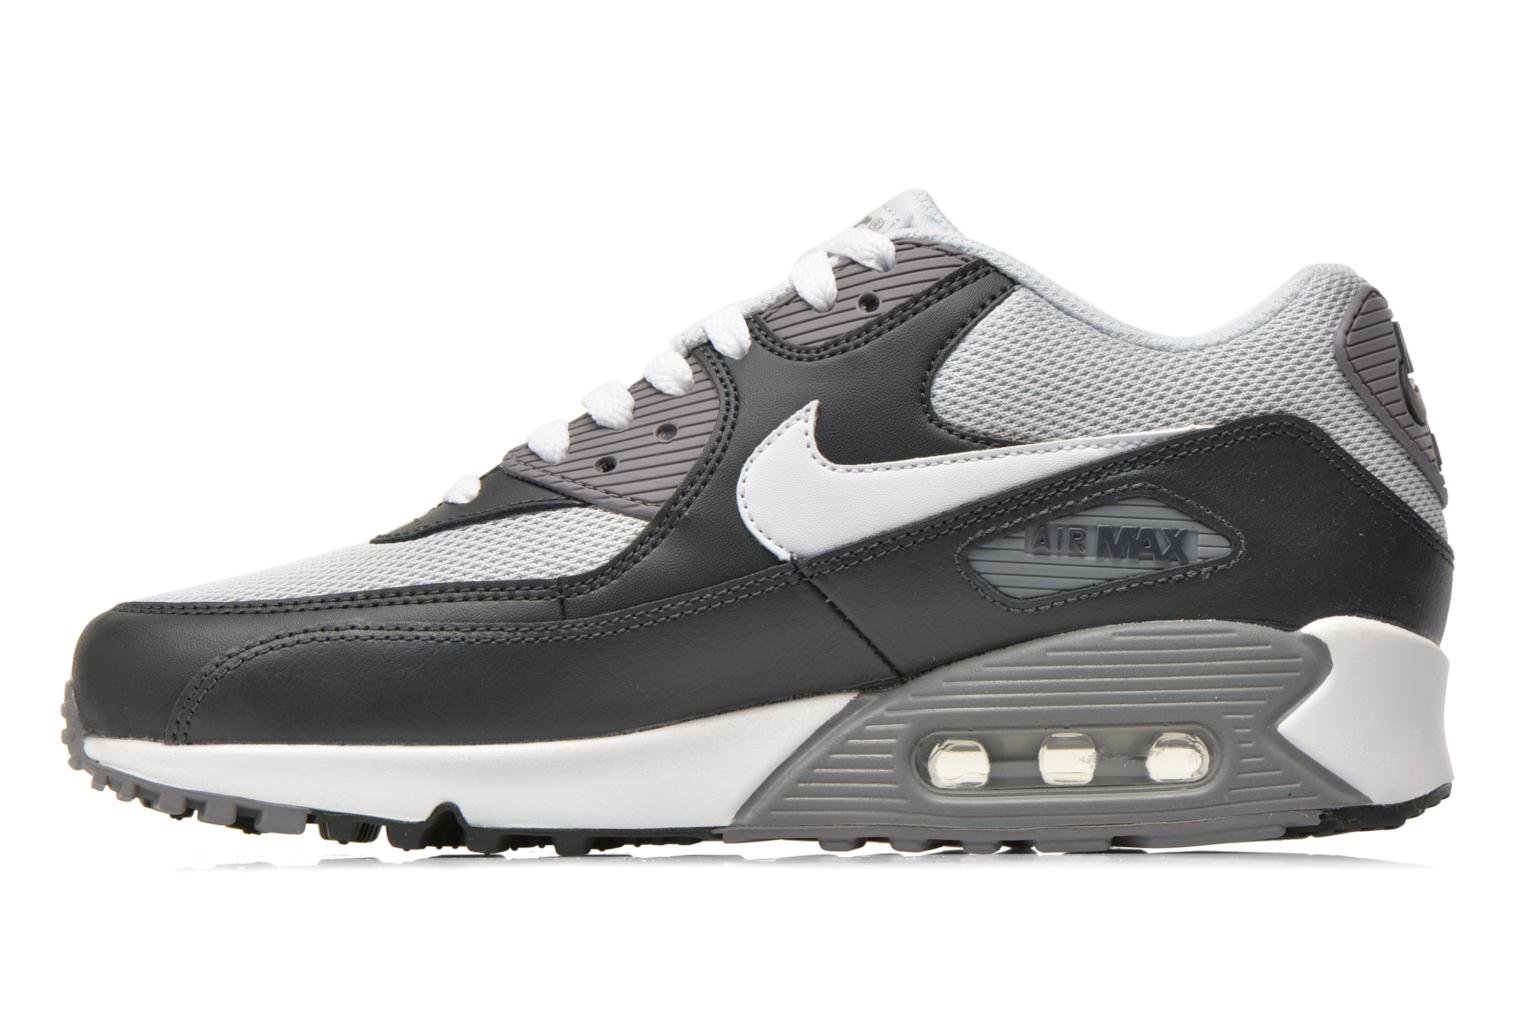 Nike Air Max 90 Essential Pr Pltnm/White-Drk Gry-Cl Gry